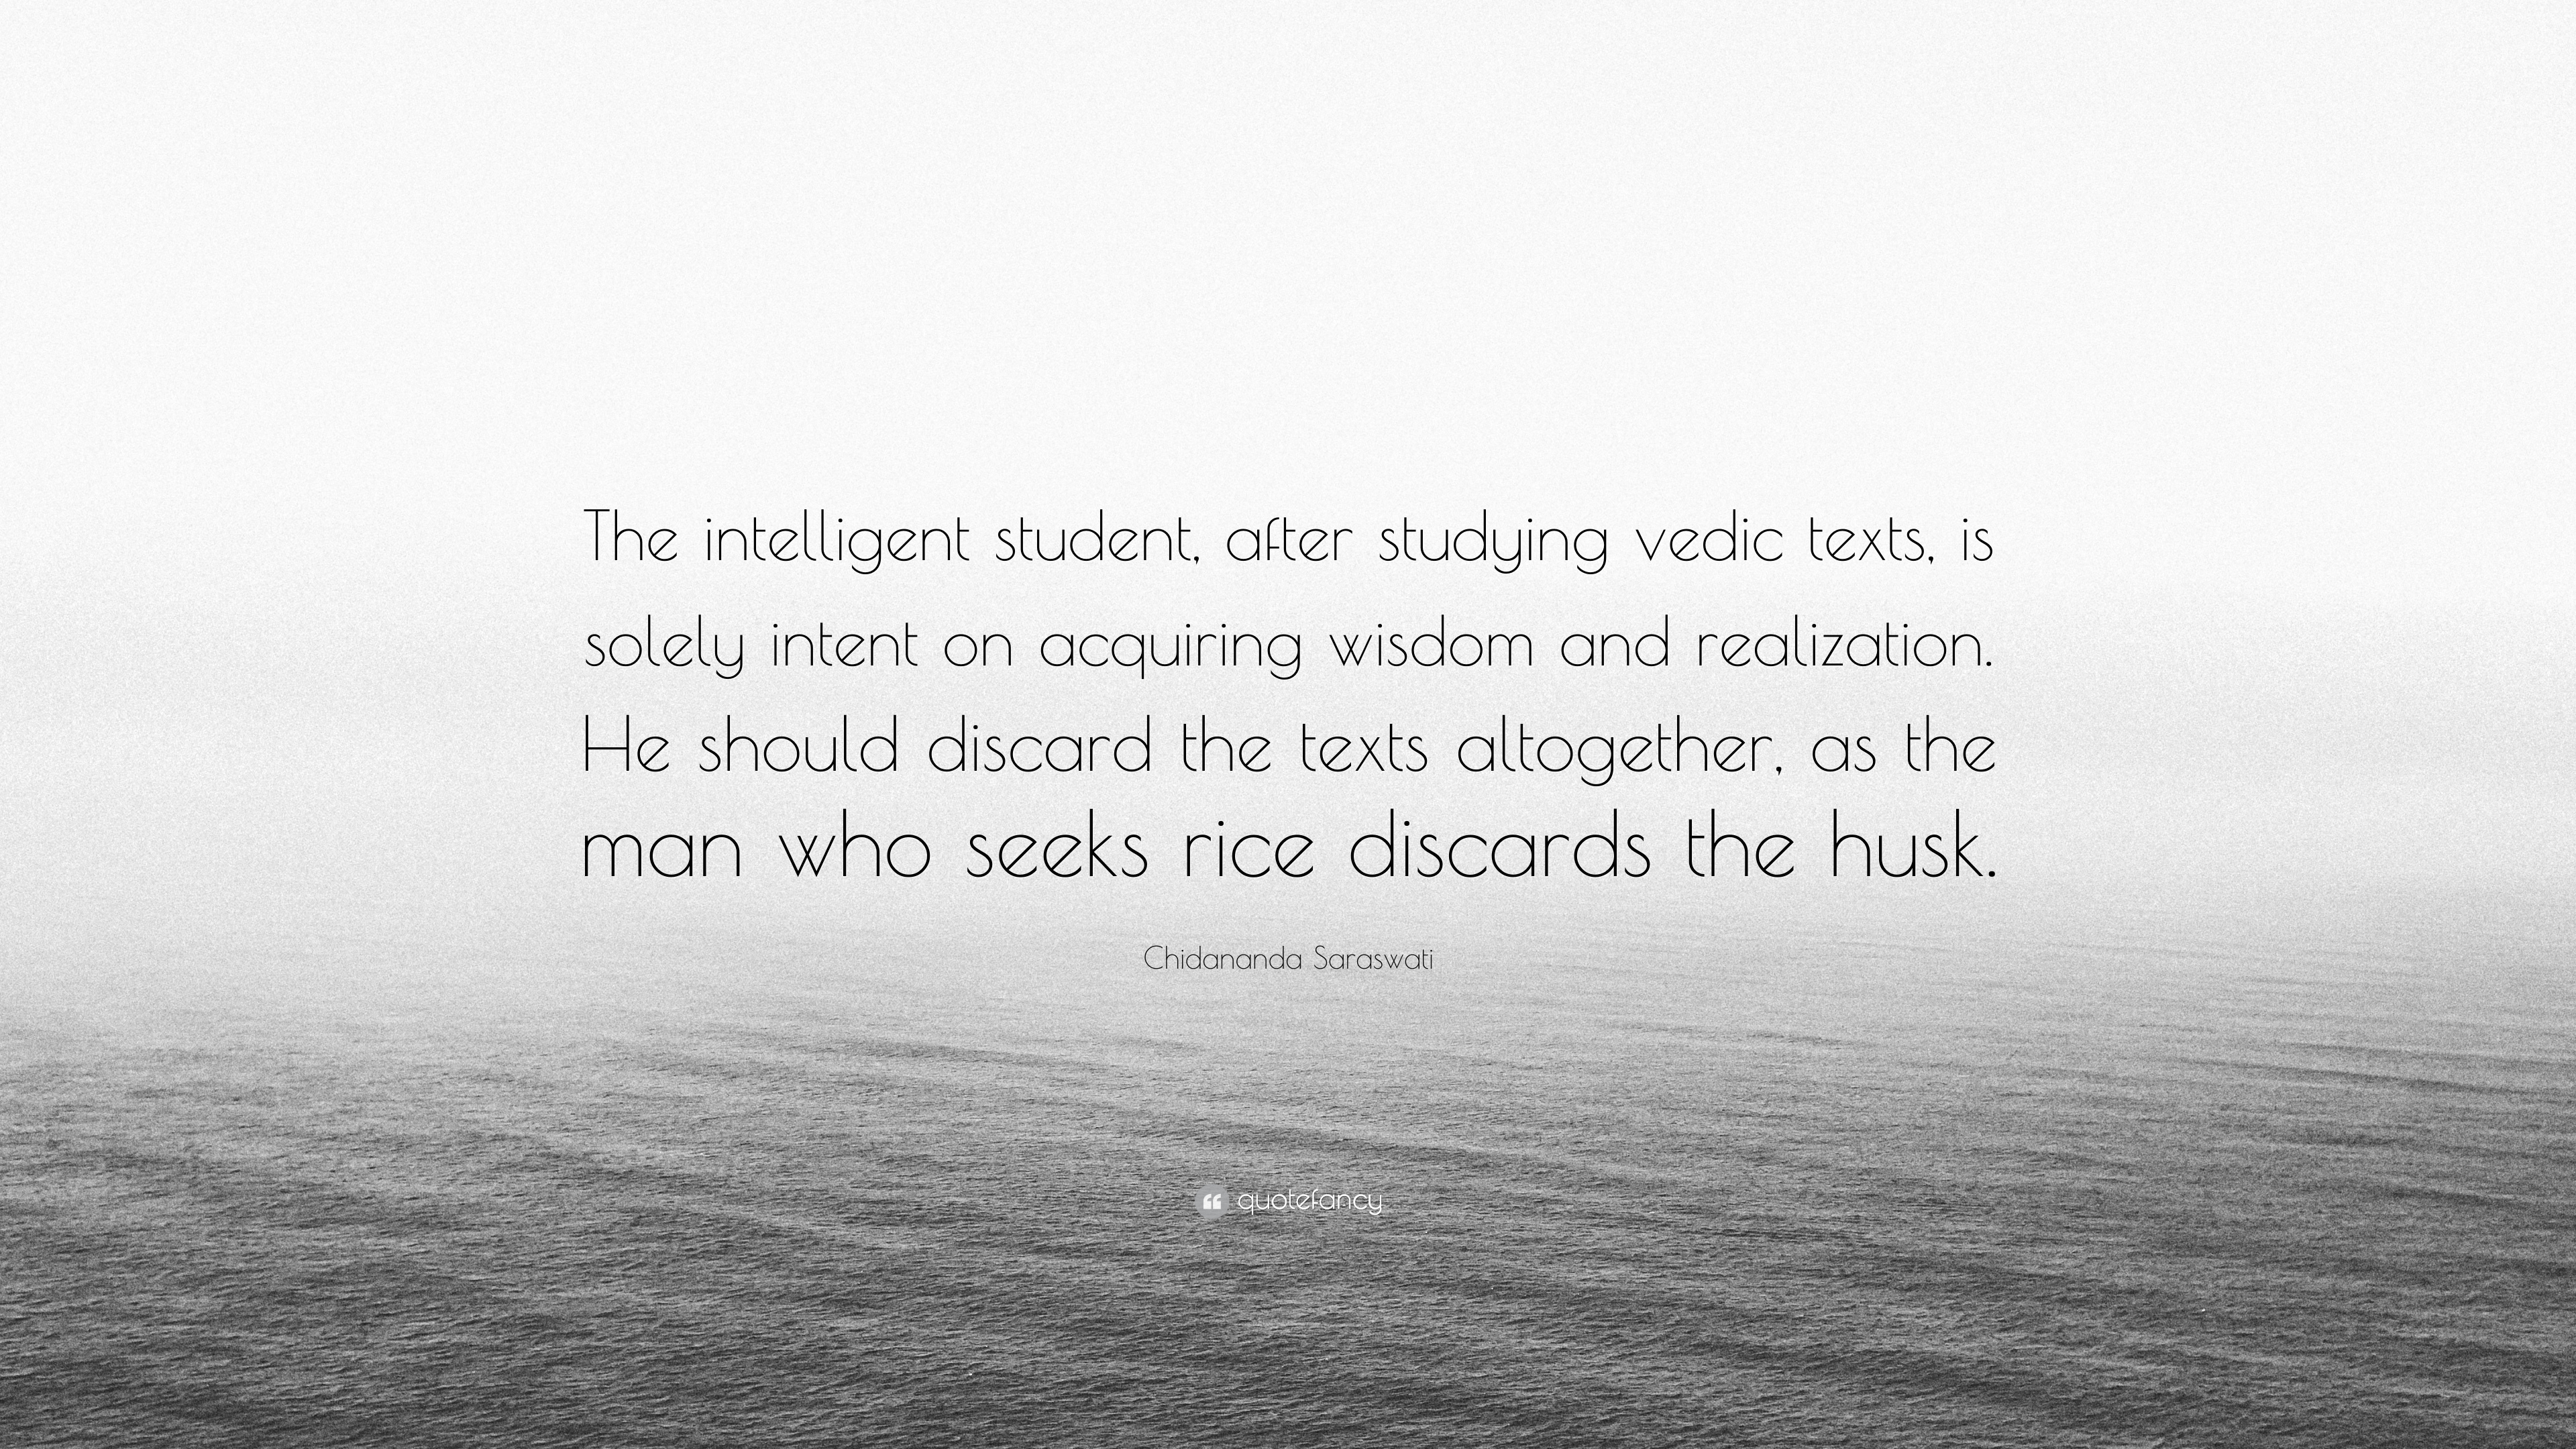 Chidananda Saraswati Quote The Intelligent Student After Studying Vedic Texts Is Solely